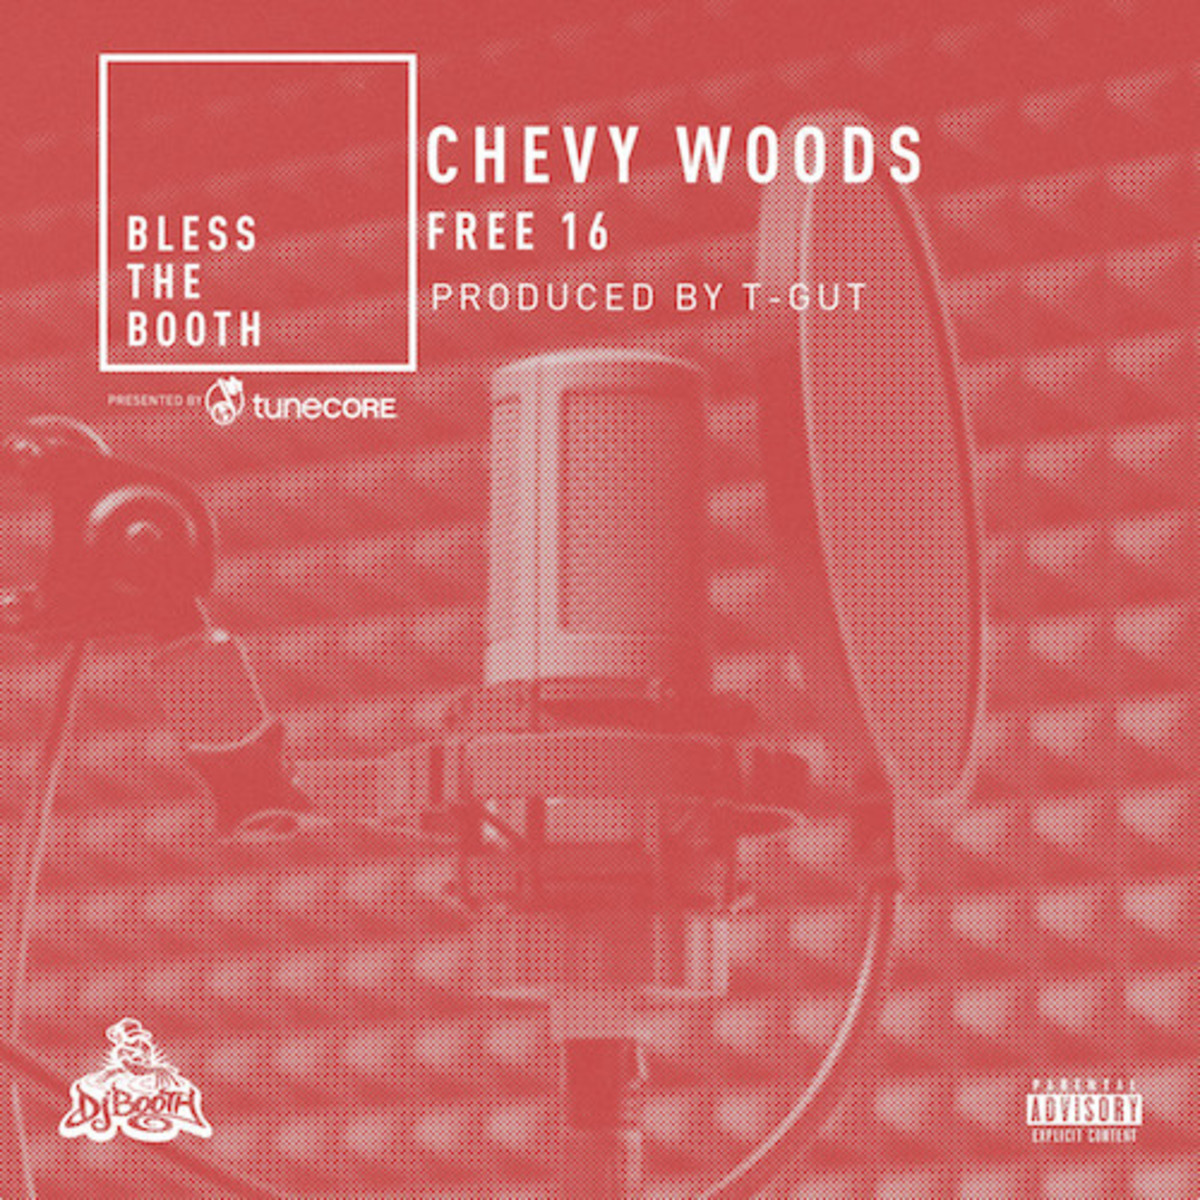 chevy-woods-bless-the-booth.jpg